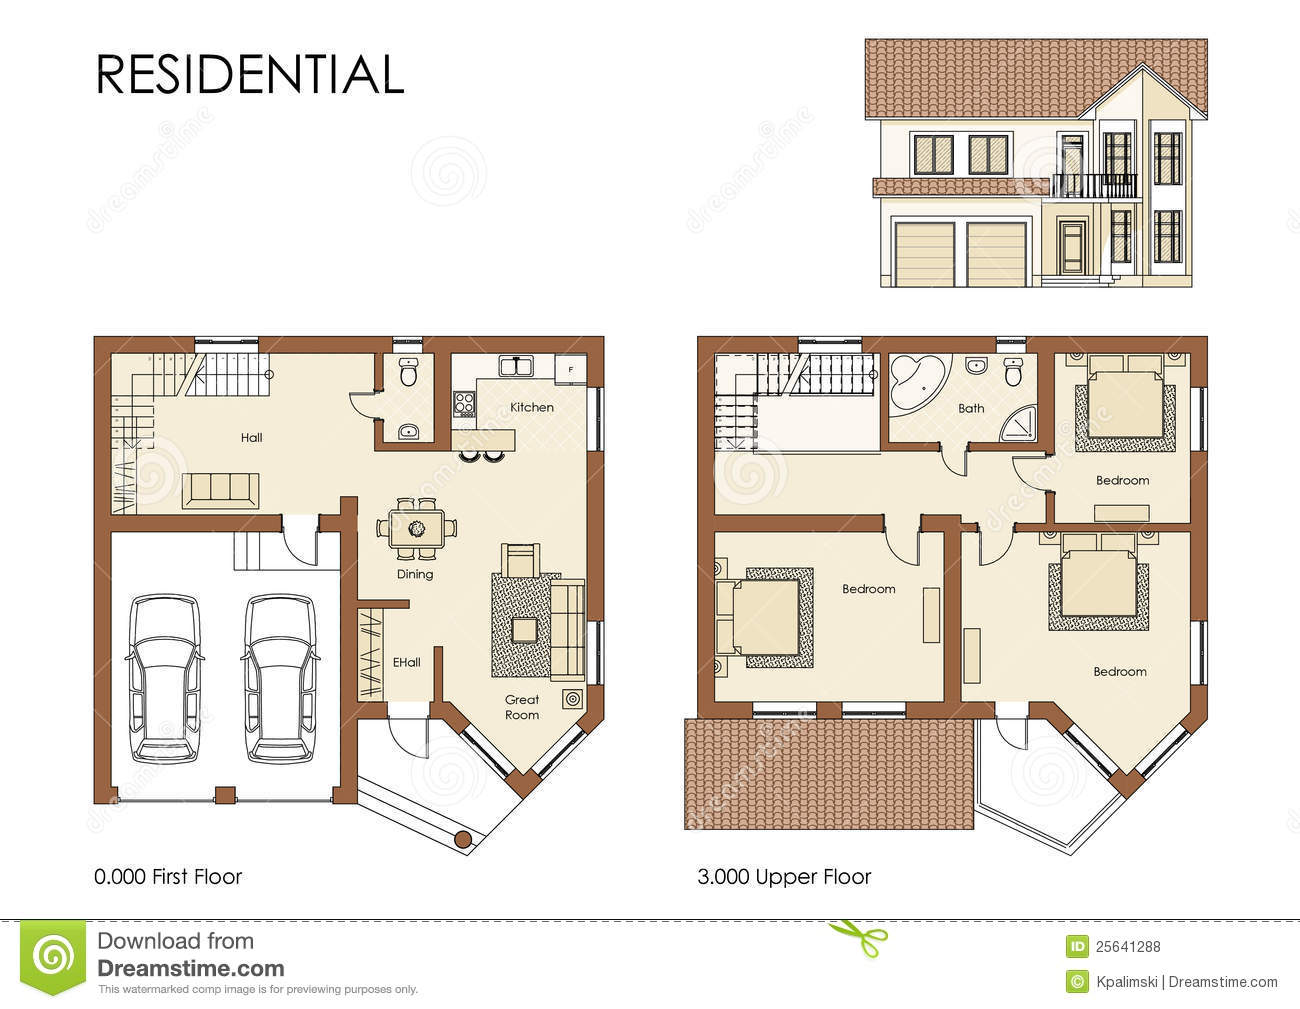 Residential house plan royalty free stock photos image for Residential house plans